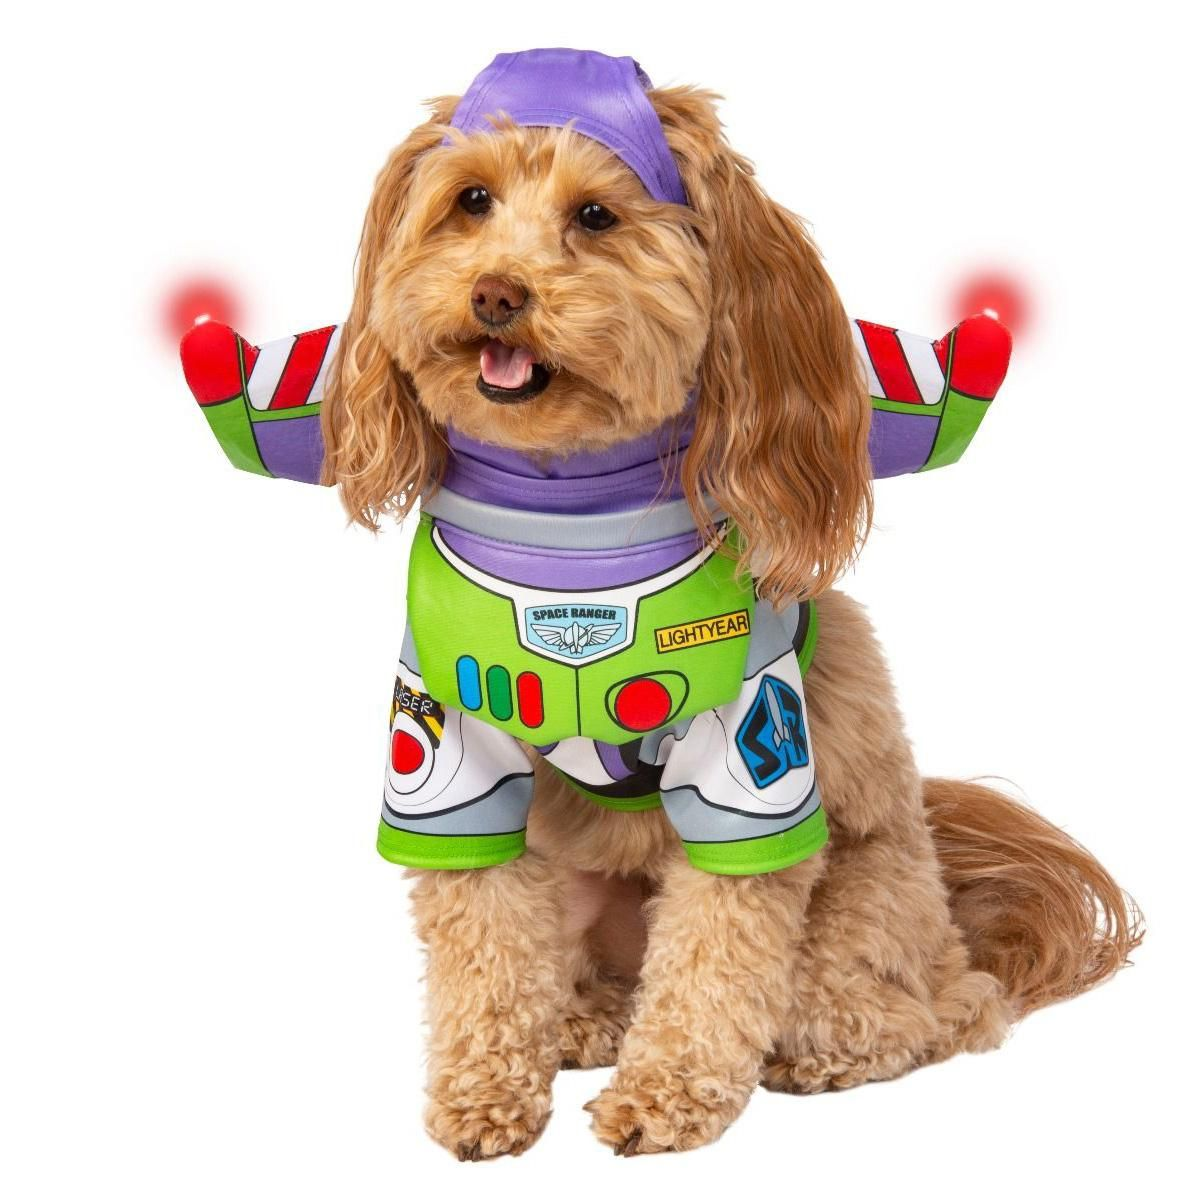 Toy Story Buzz Lightyear Dog Costume By Rubies Pet Costumes Toy